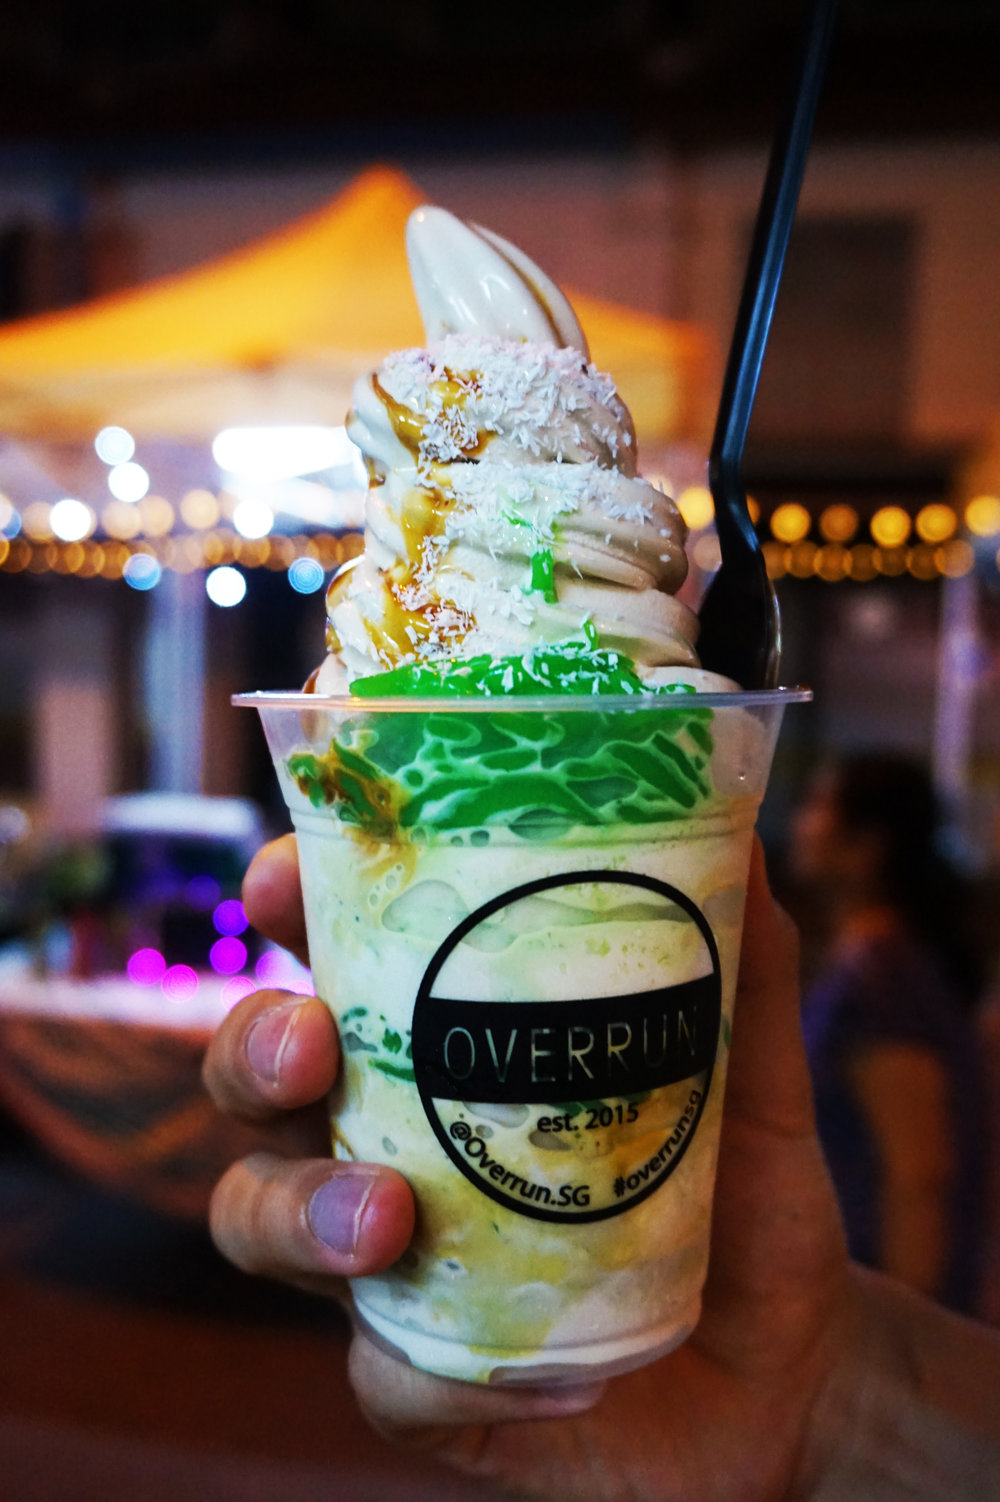 Iced chendol with gula melaka from Overrun SG